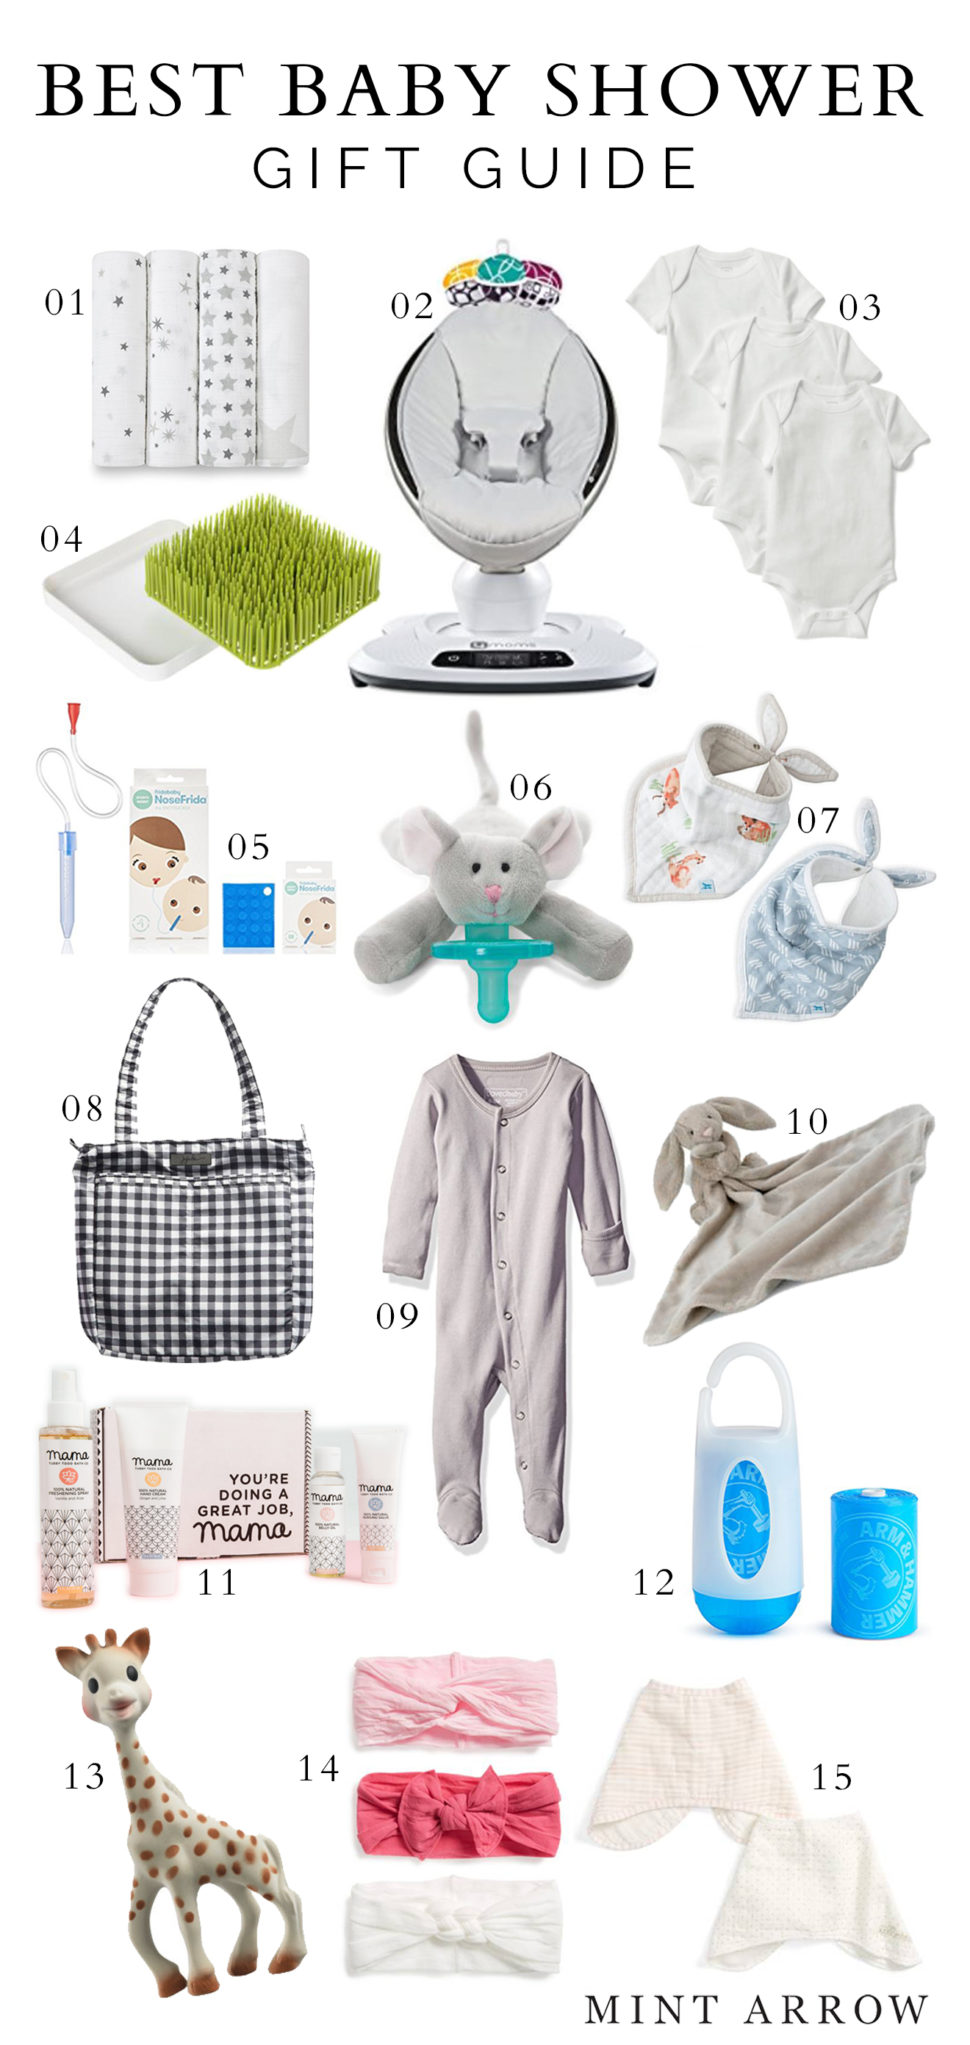 Medium Size of Baby Shower:best Baby Shower Gifts And Baby Shower Products With Mi Baby Shower Plus Baby Shower Party Supplies Together With Baby Shower Activities As Well As Baby Shower Punch Best Baby Shower Gifts Best Baby Shower Gifts Mint Arrow Pin The Post